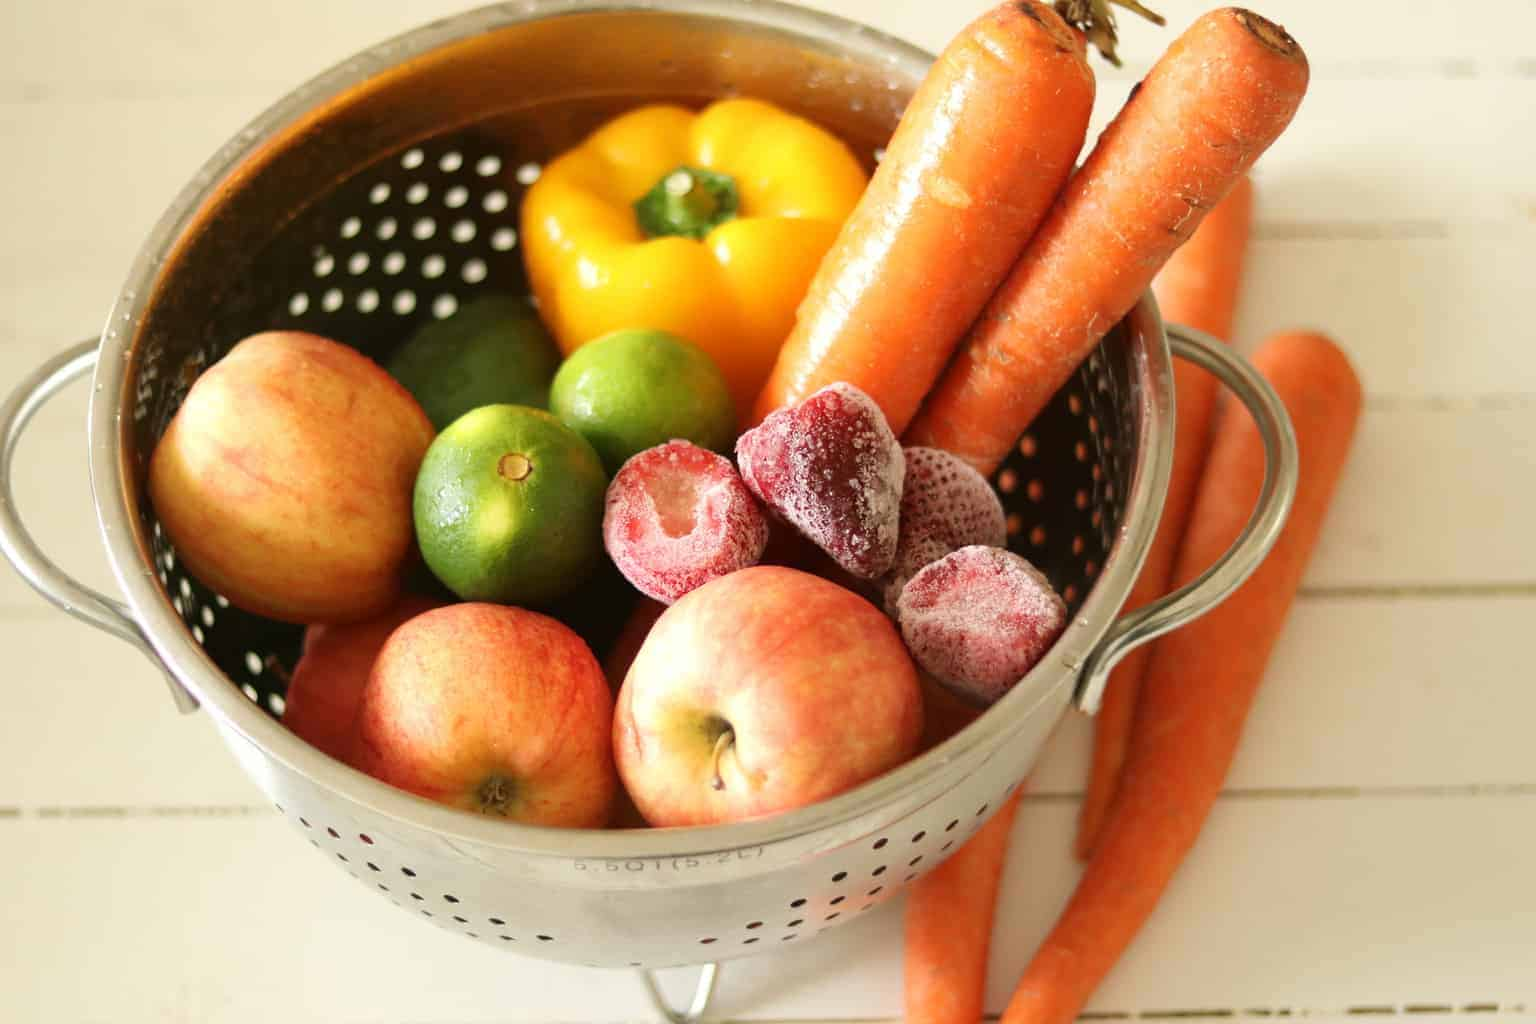 Fruit and vegetables in a strainer.